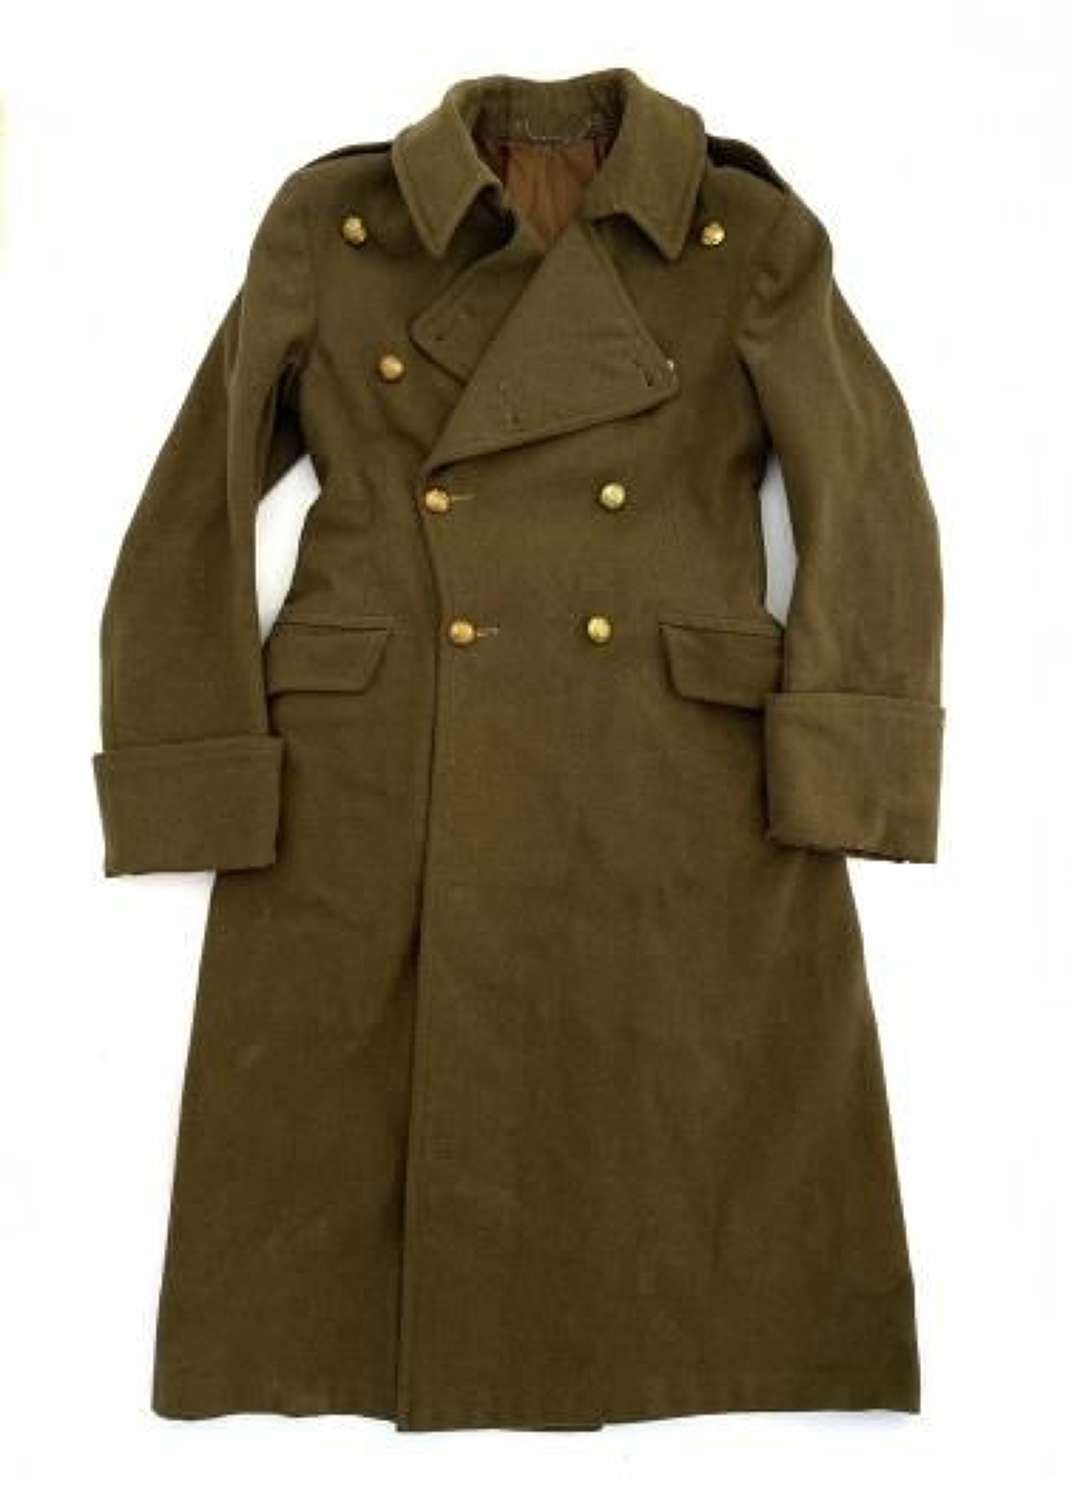 Original 1941 Dated Royal Artillery Officers Greatcoat Name to 'Bull K